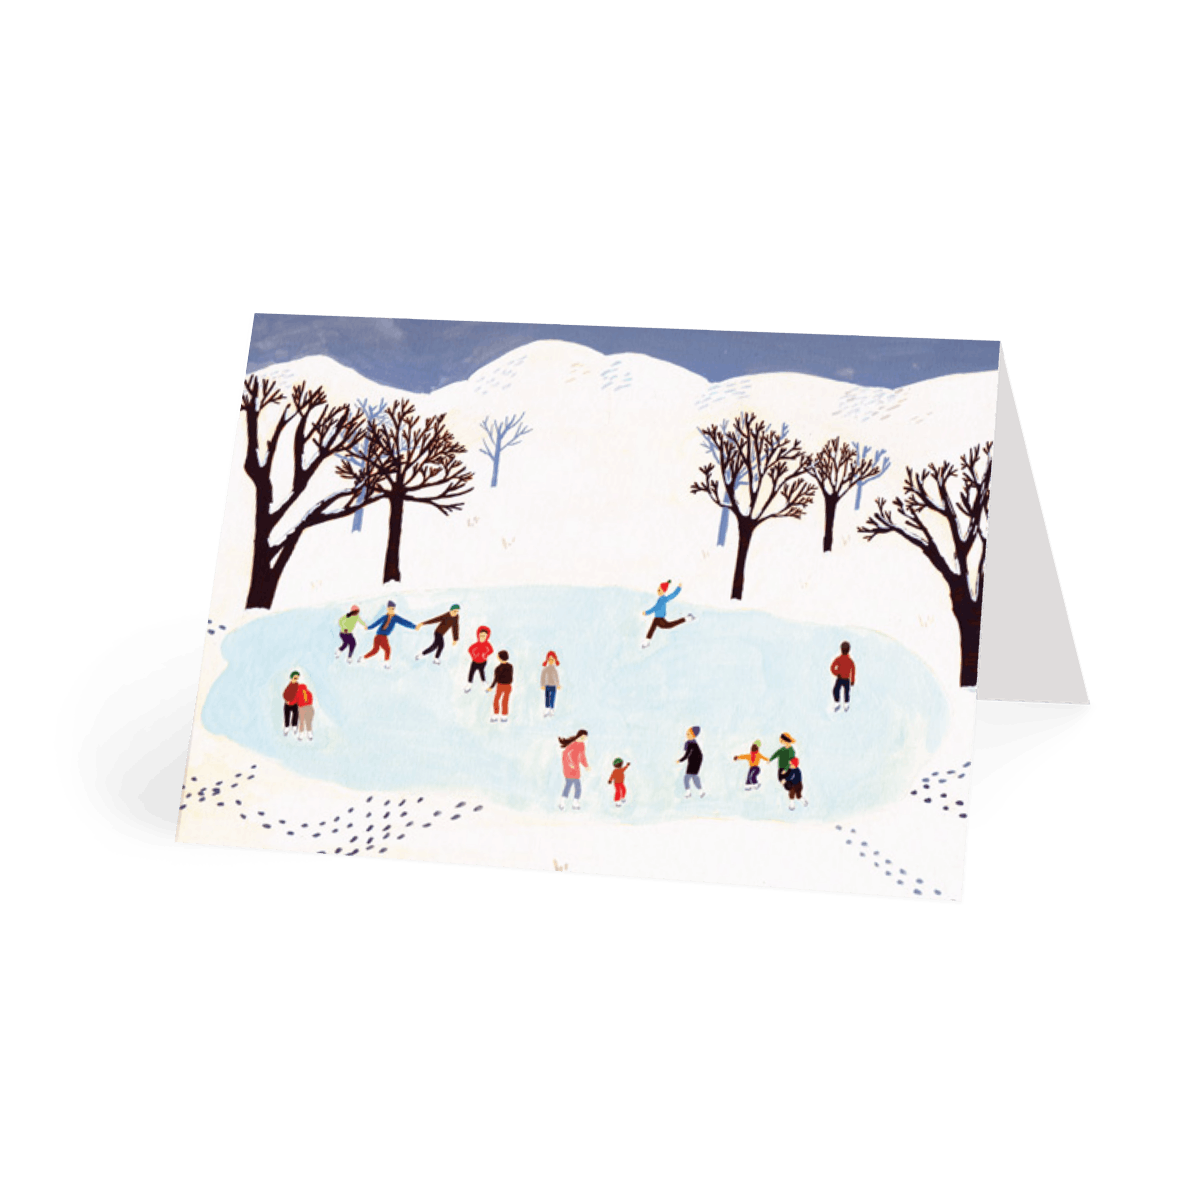 Https%3a%2f%2fwww.papier.com%2fproduct image%2f13209%2f14%2fice skaters 3351 avant 1478088284.png?ixlib=rb 1.1